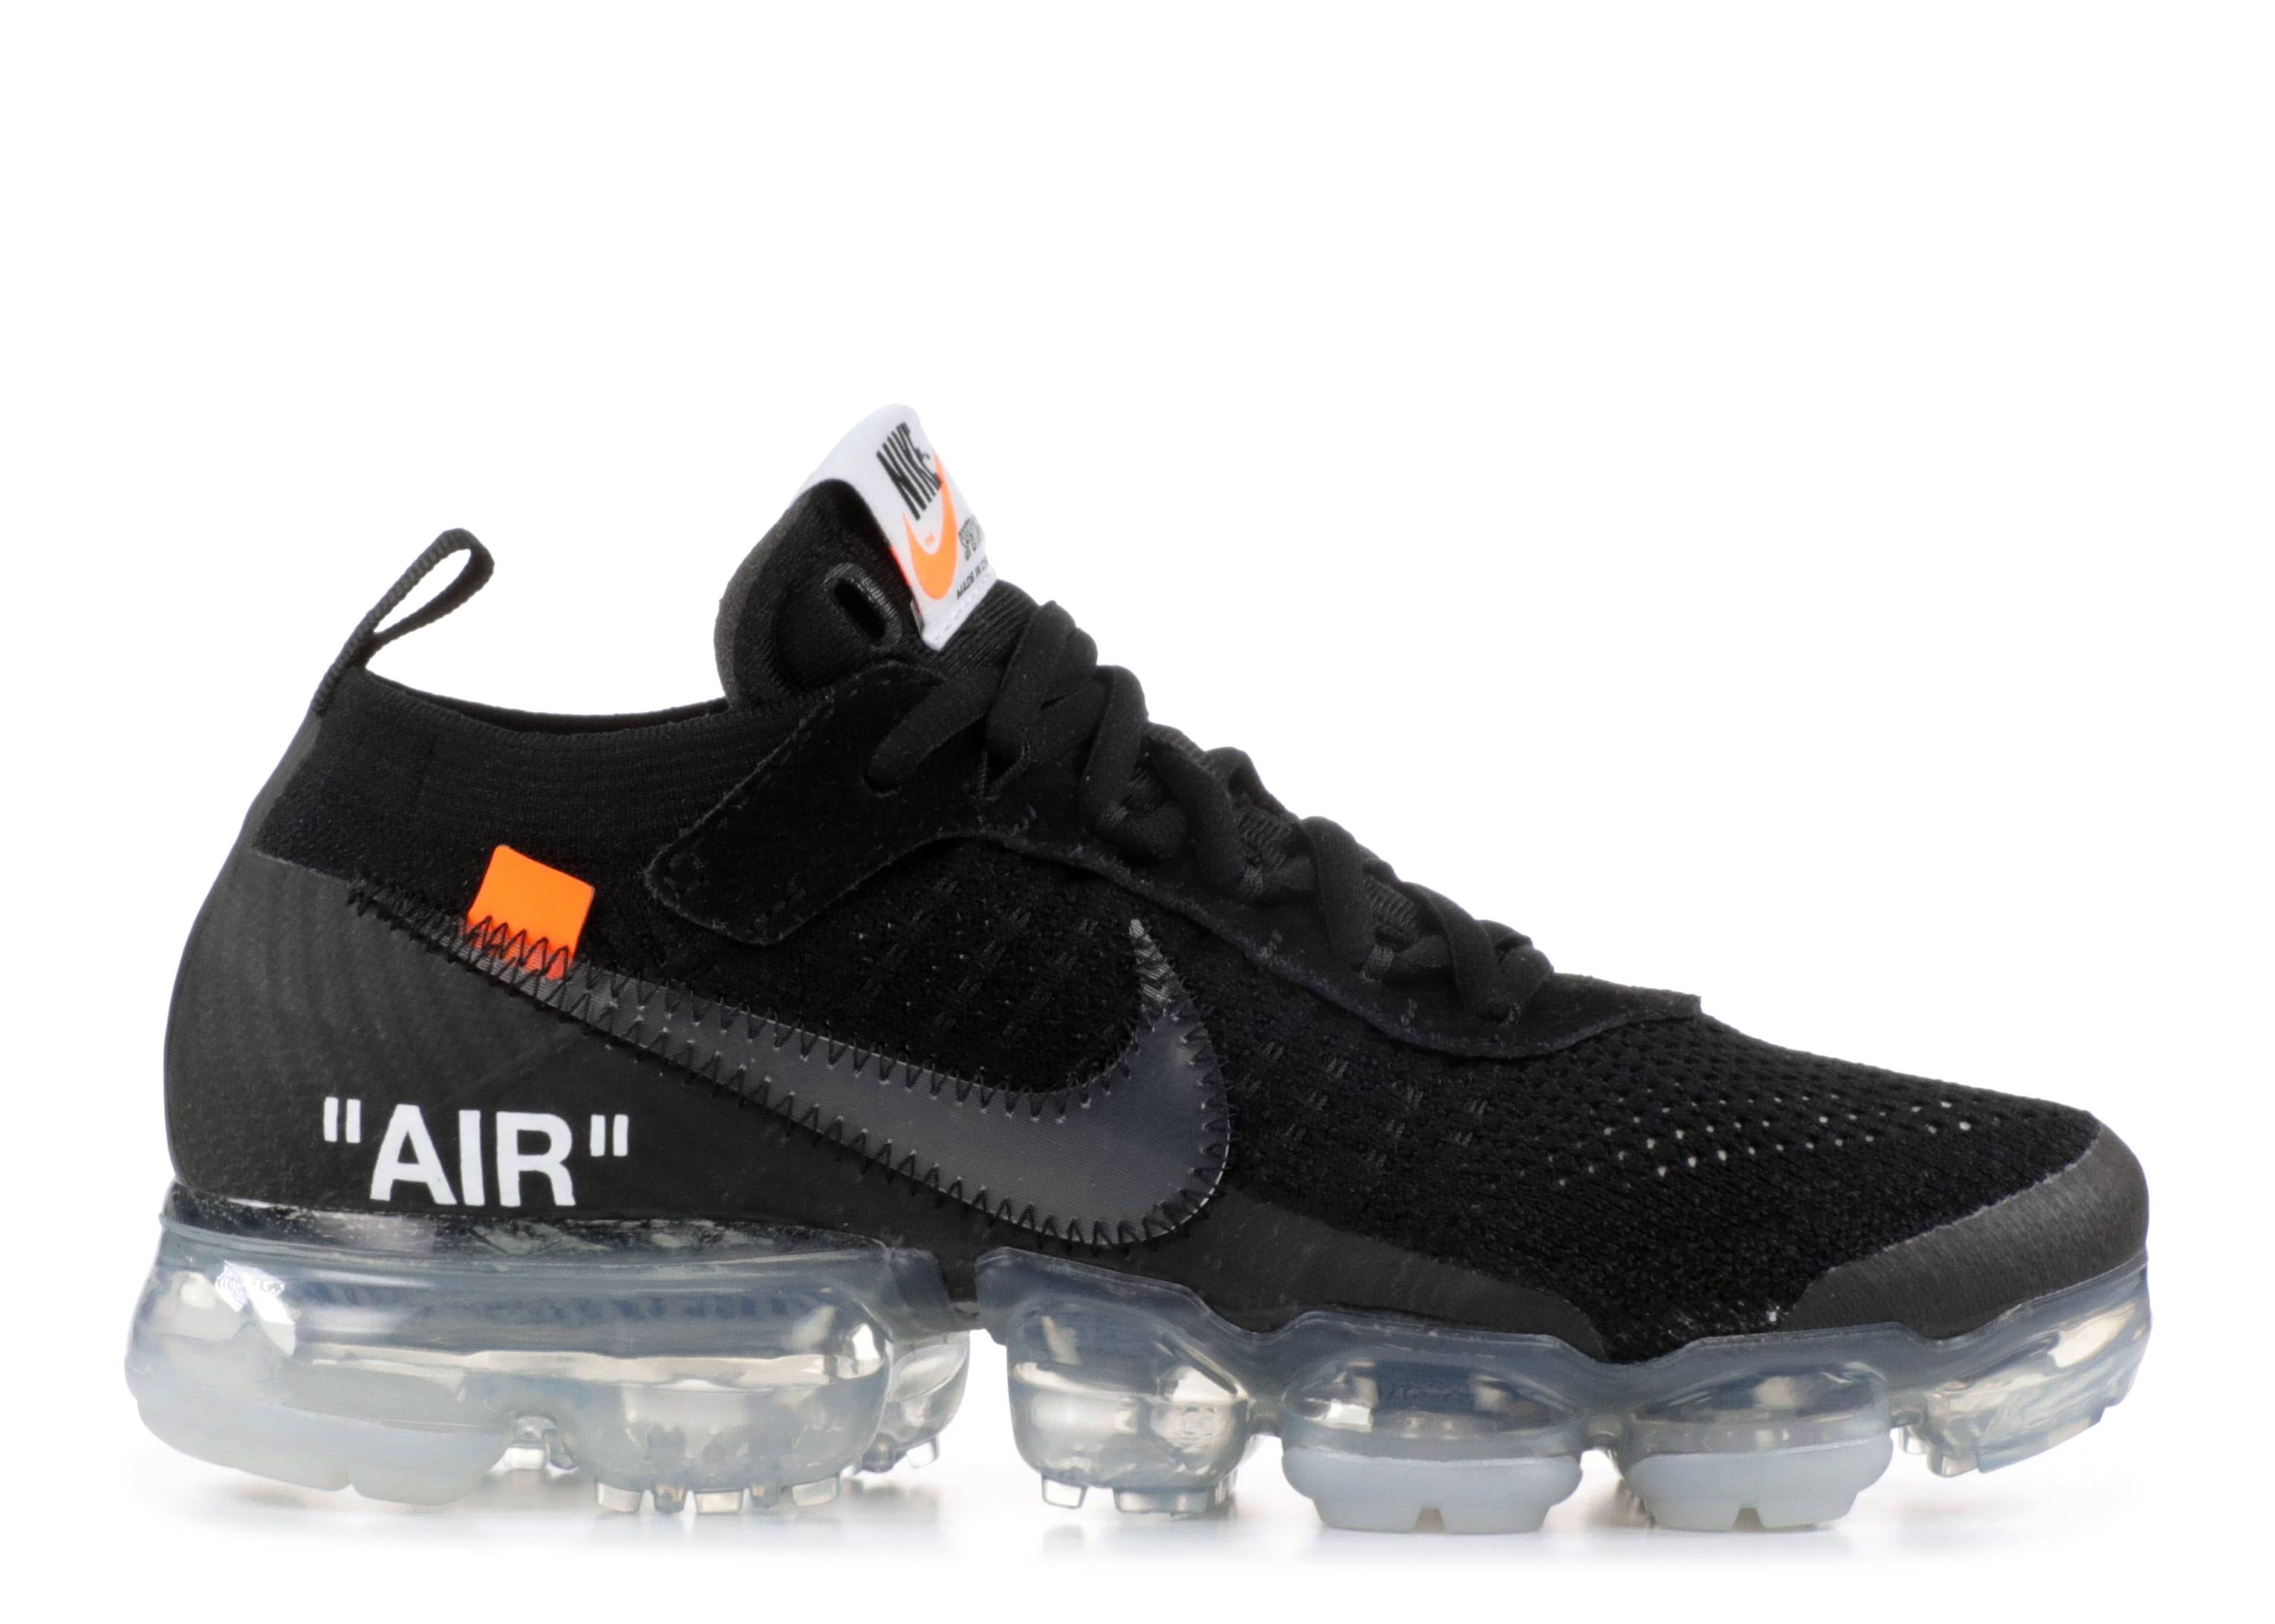 9a5656c504 The 10: Nike Air Vapormax Fk